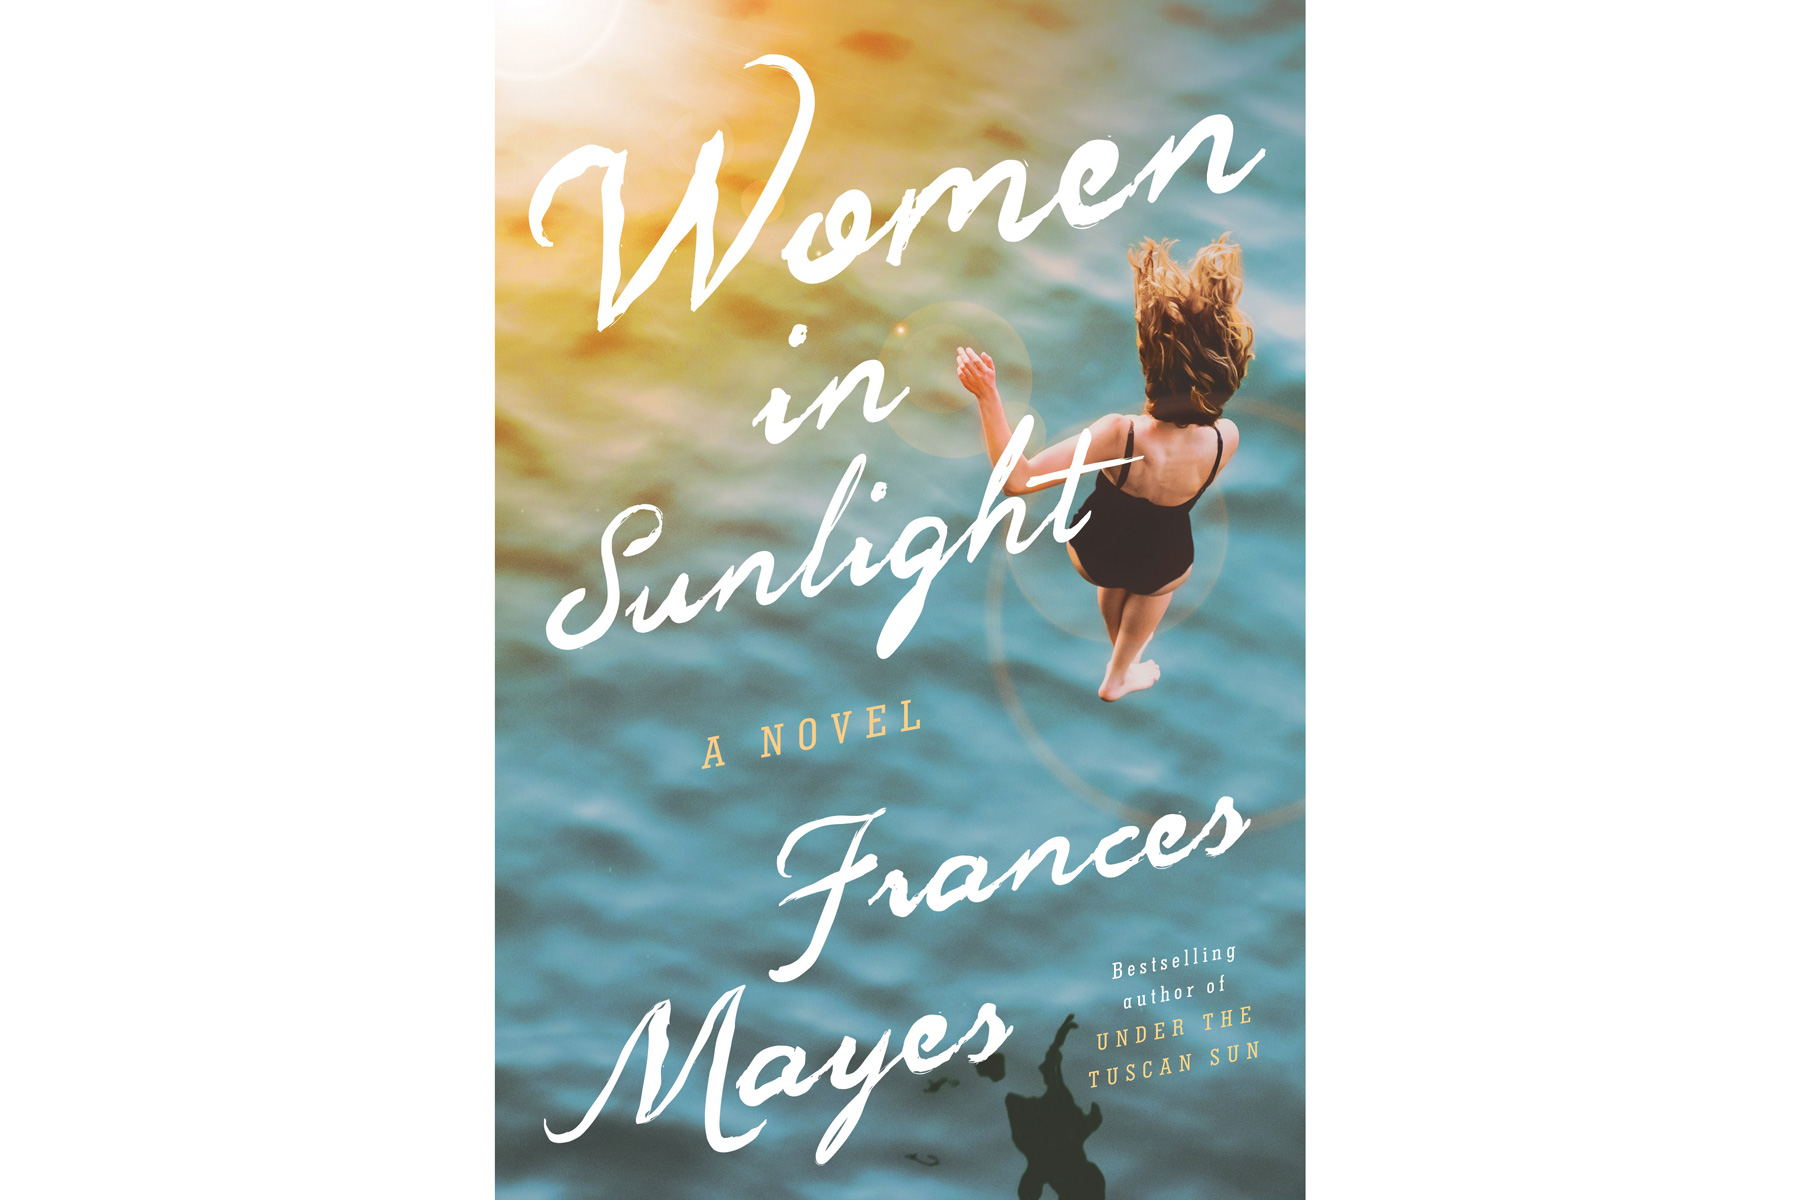 Women in Sunlight, by Frances Mayes